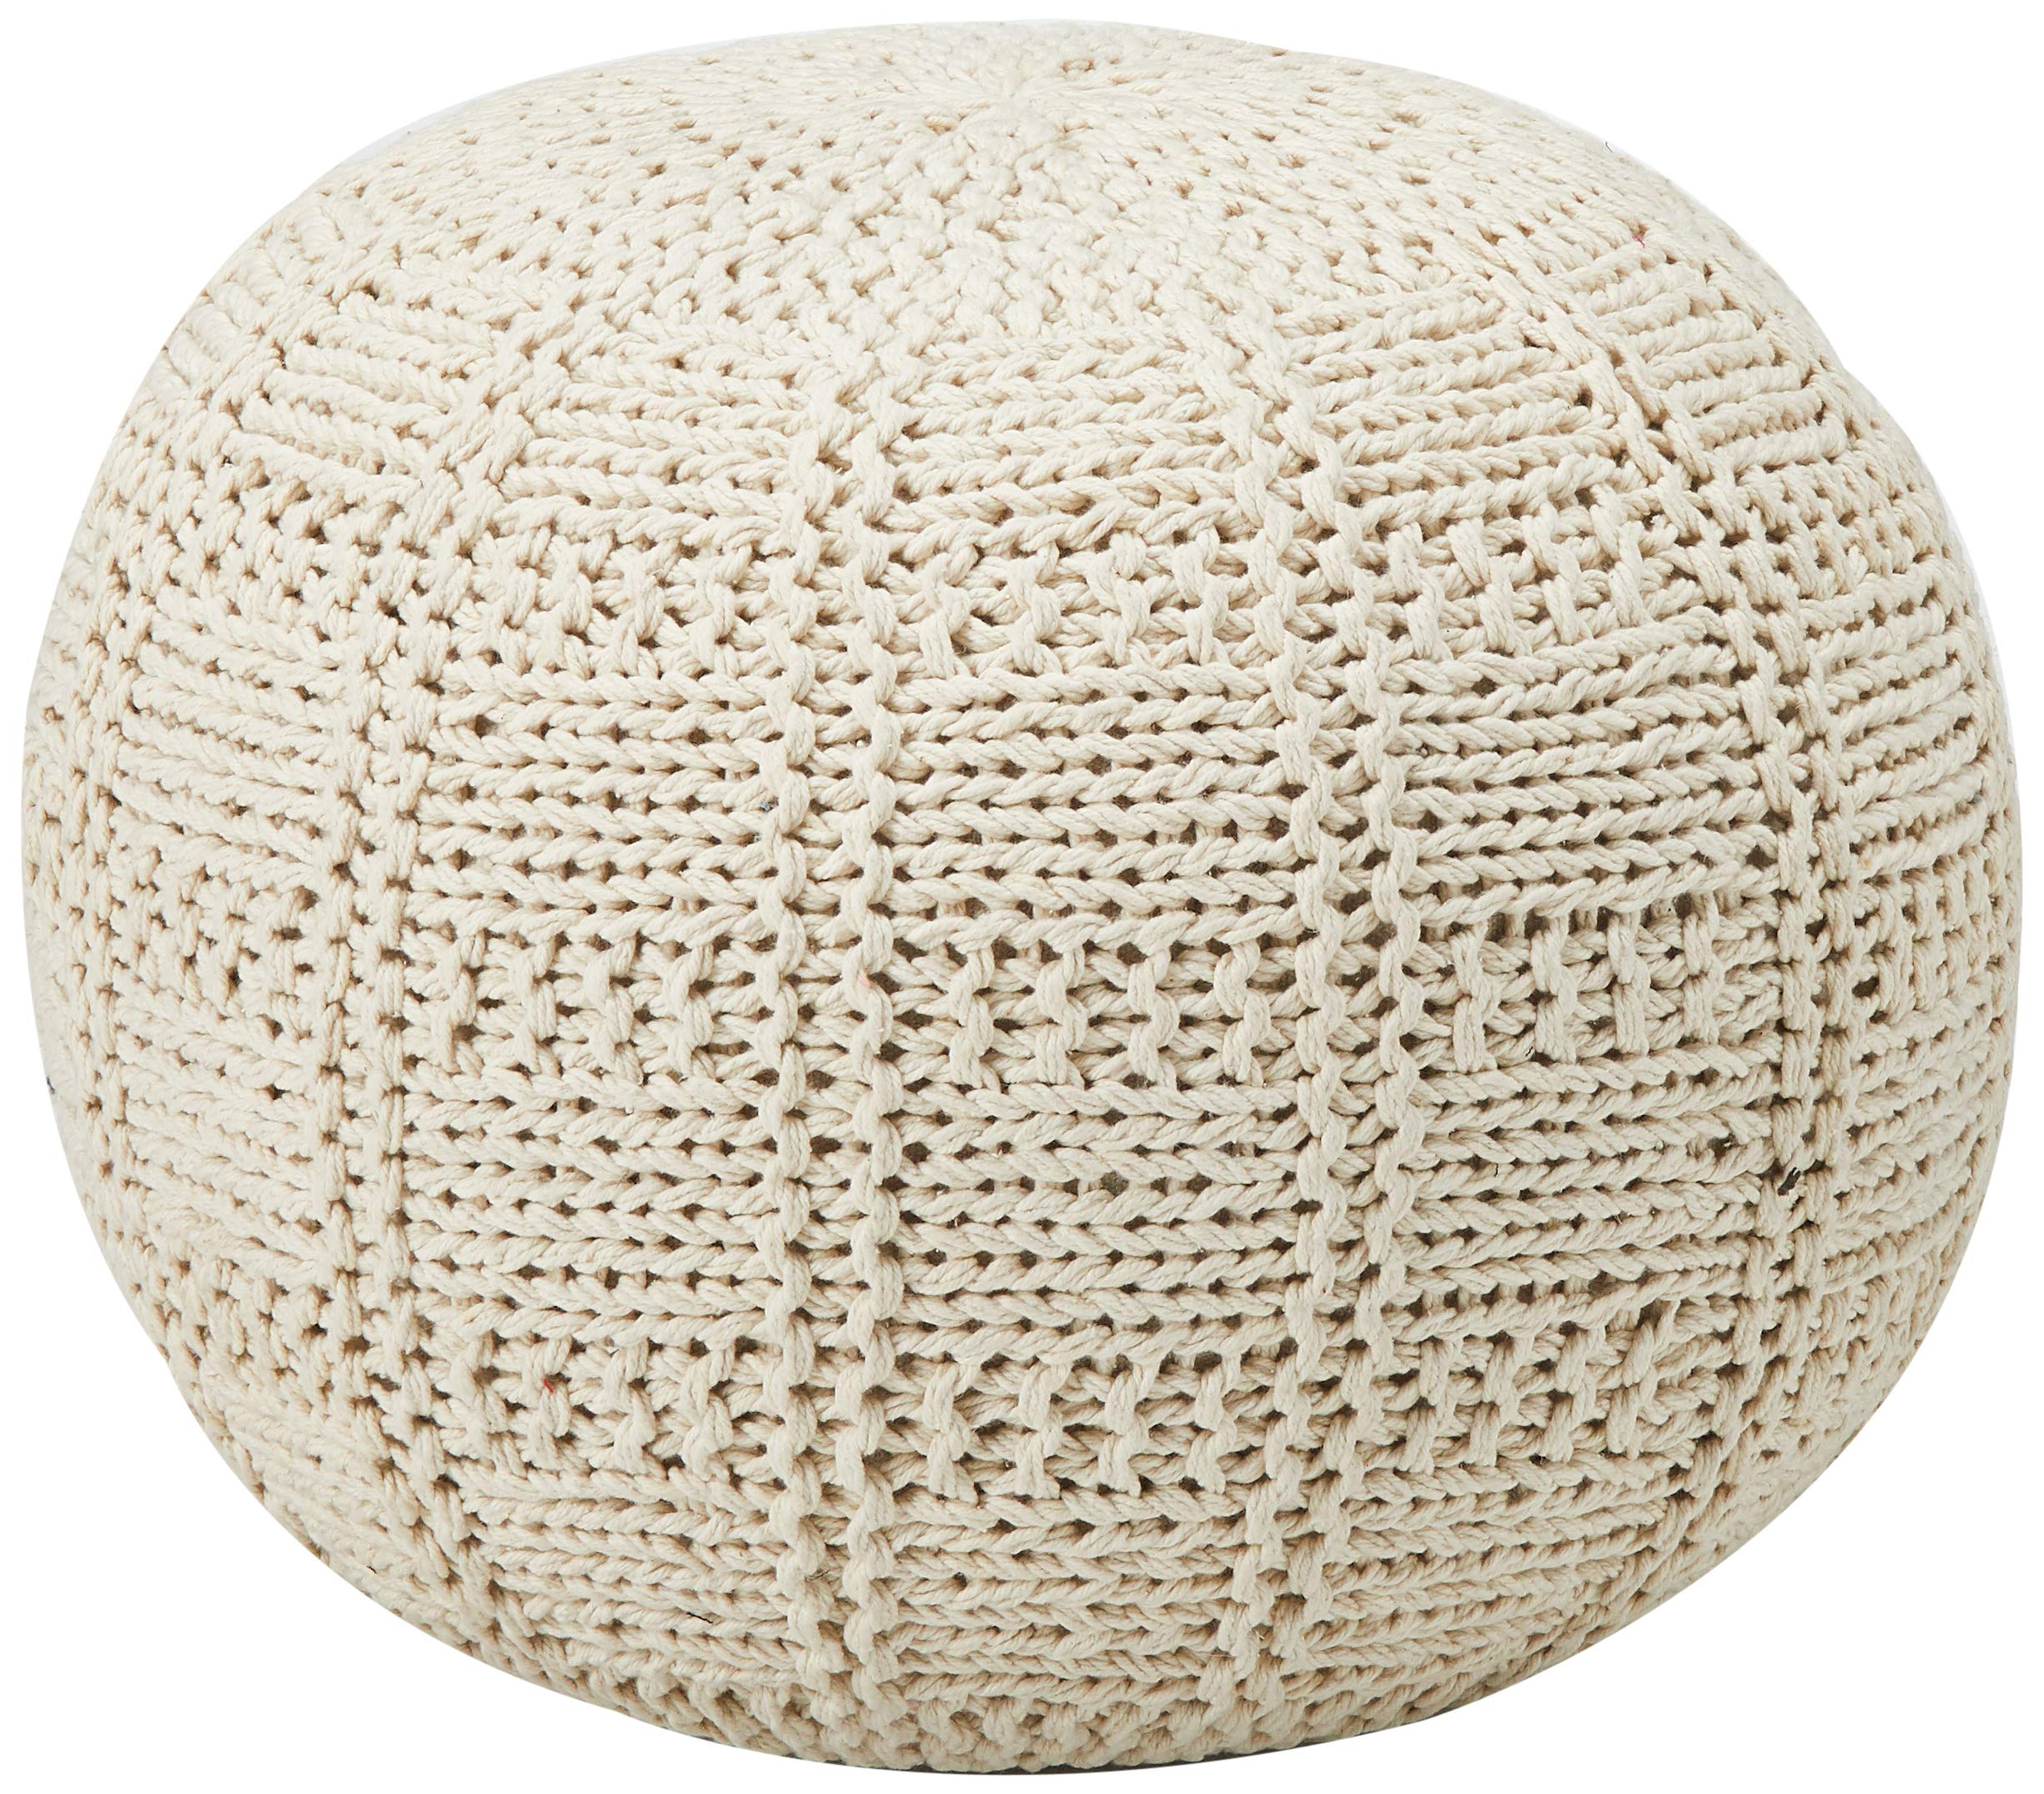 Christopher Knight Home Valentine Hand Knit Fabric Pouf (Ivory) by Christopher Knight Home